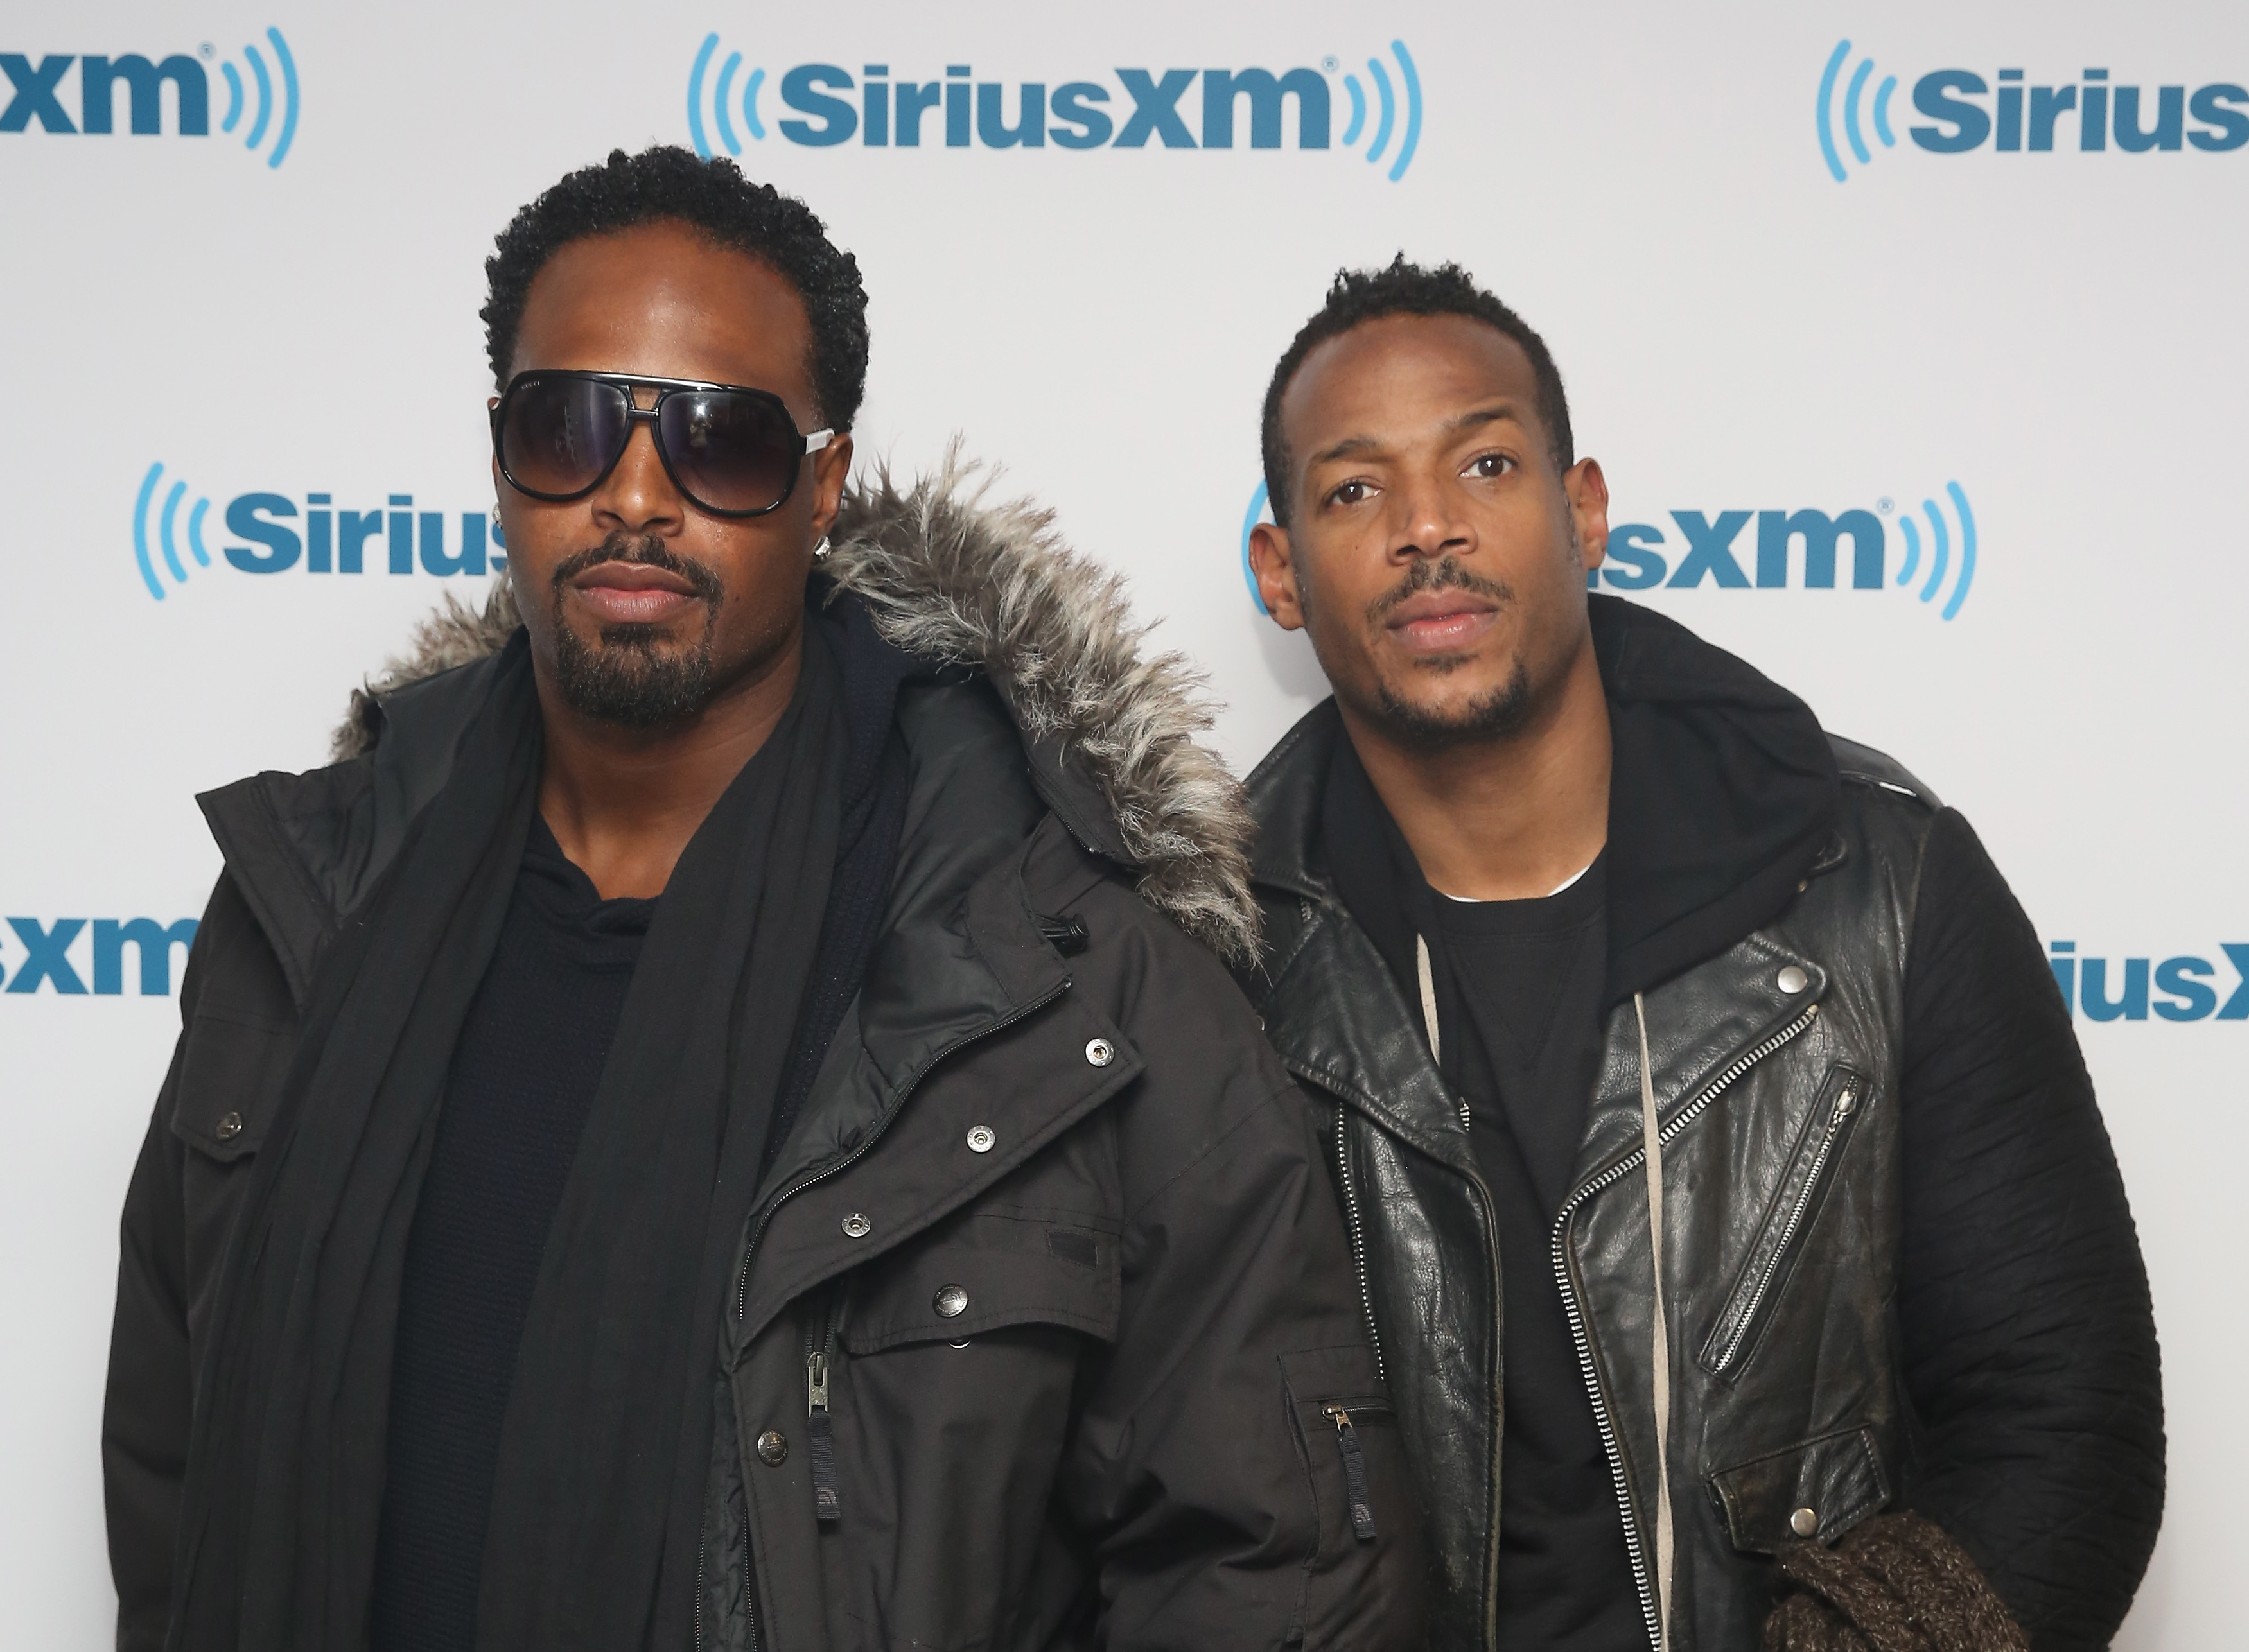 Celebrities Visit SiriusXM Studios - January 16, 2015